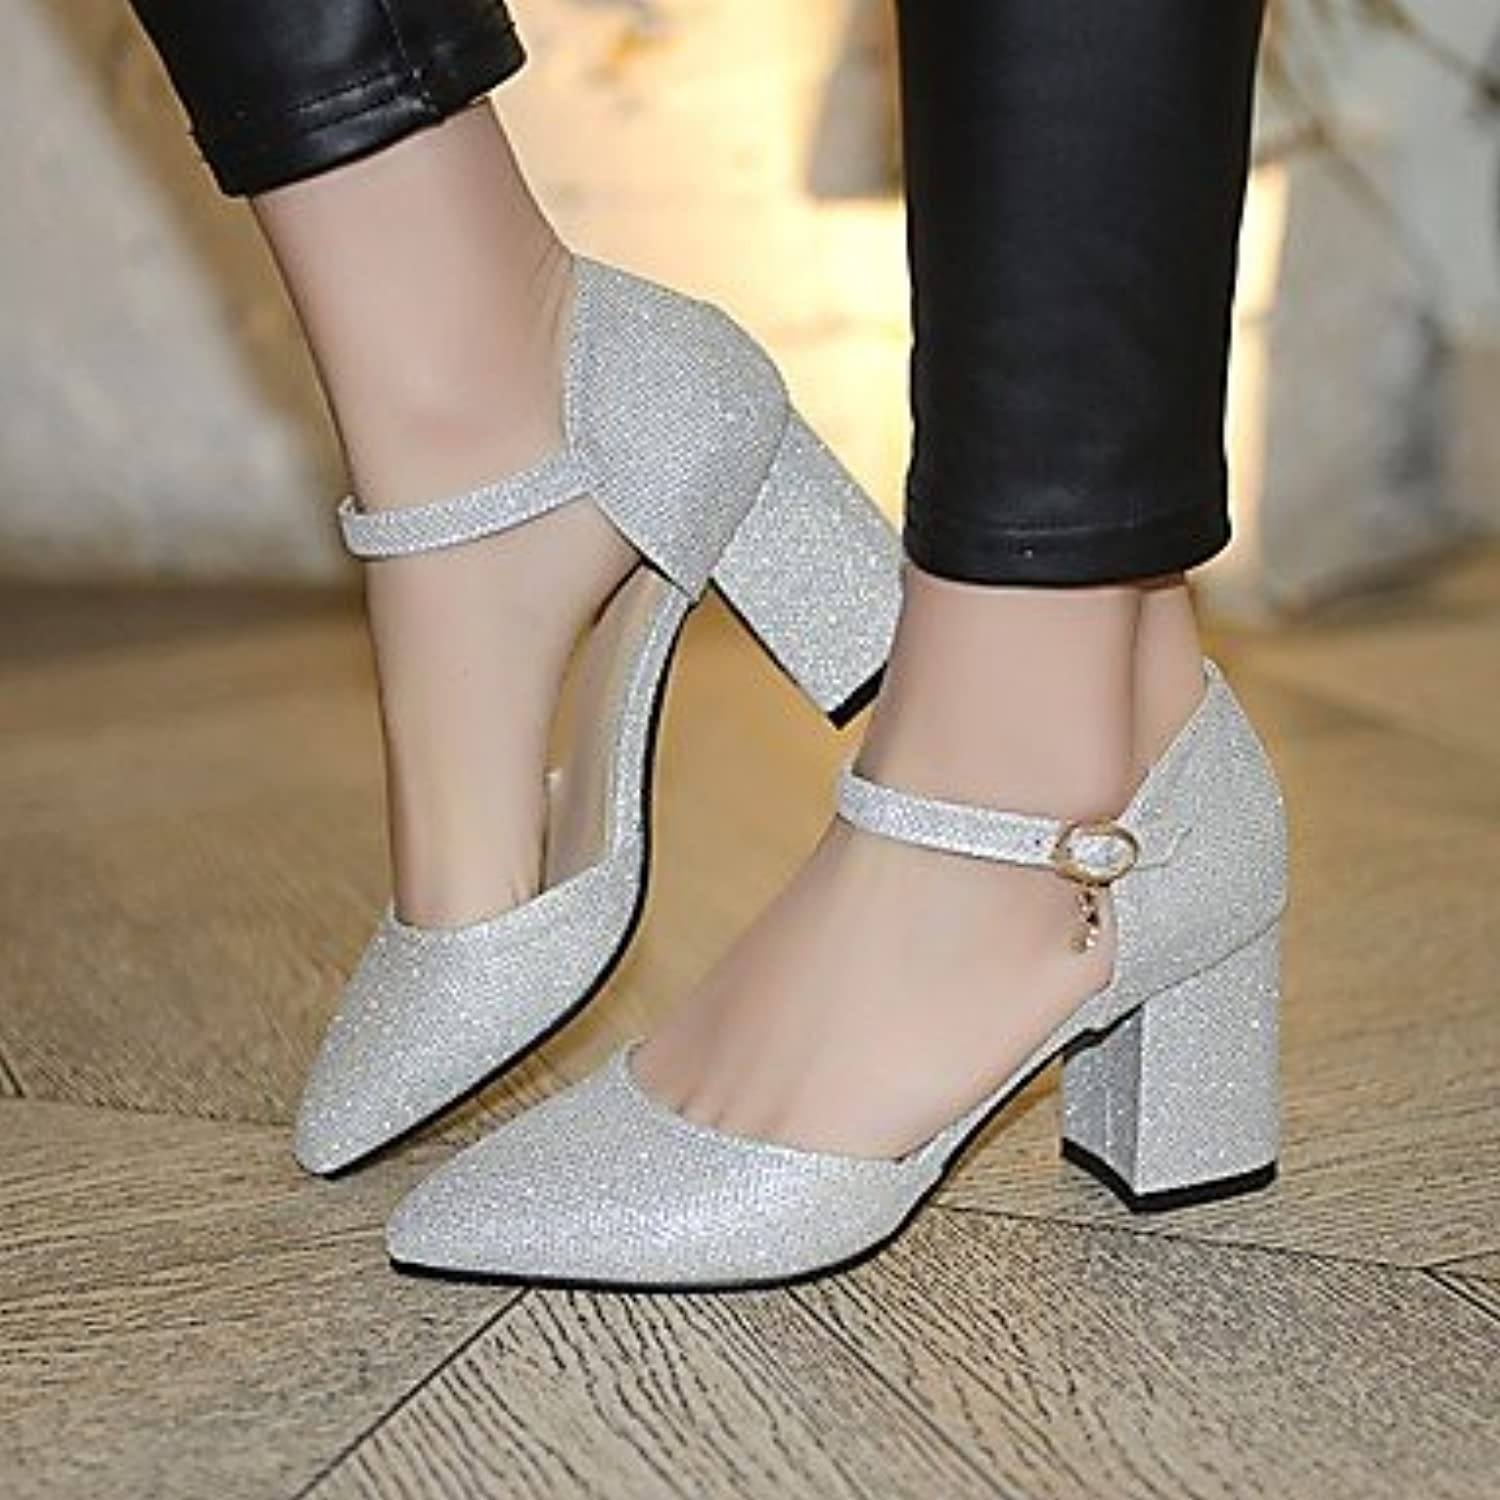 Women 039 s Heels Comfort Nubuck leather PU Summer Casual Comfort Green Black 4in-4 3 4inSilverUS6.5-7 EU37 UK4.5-5 CN37